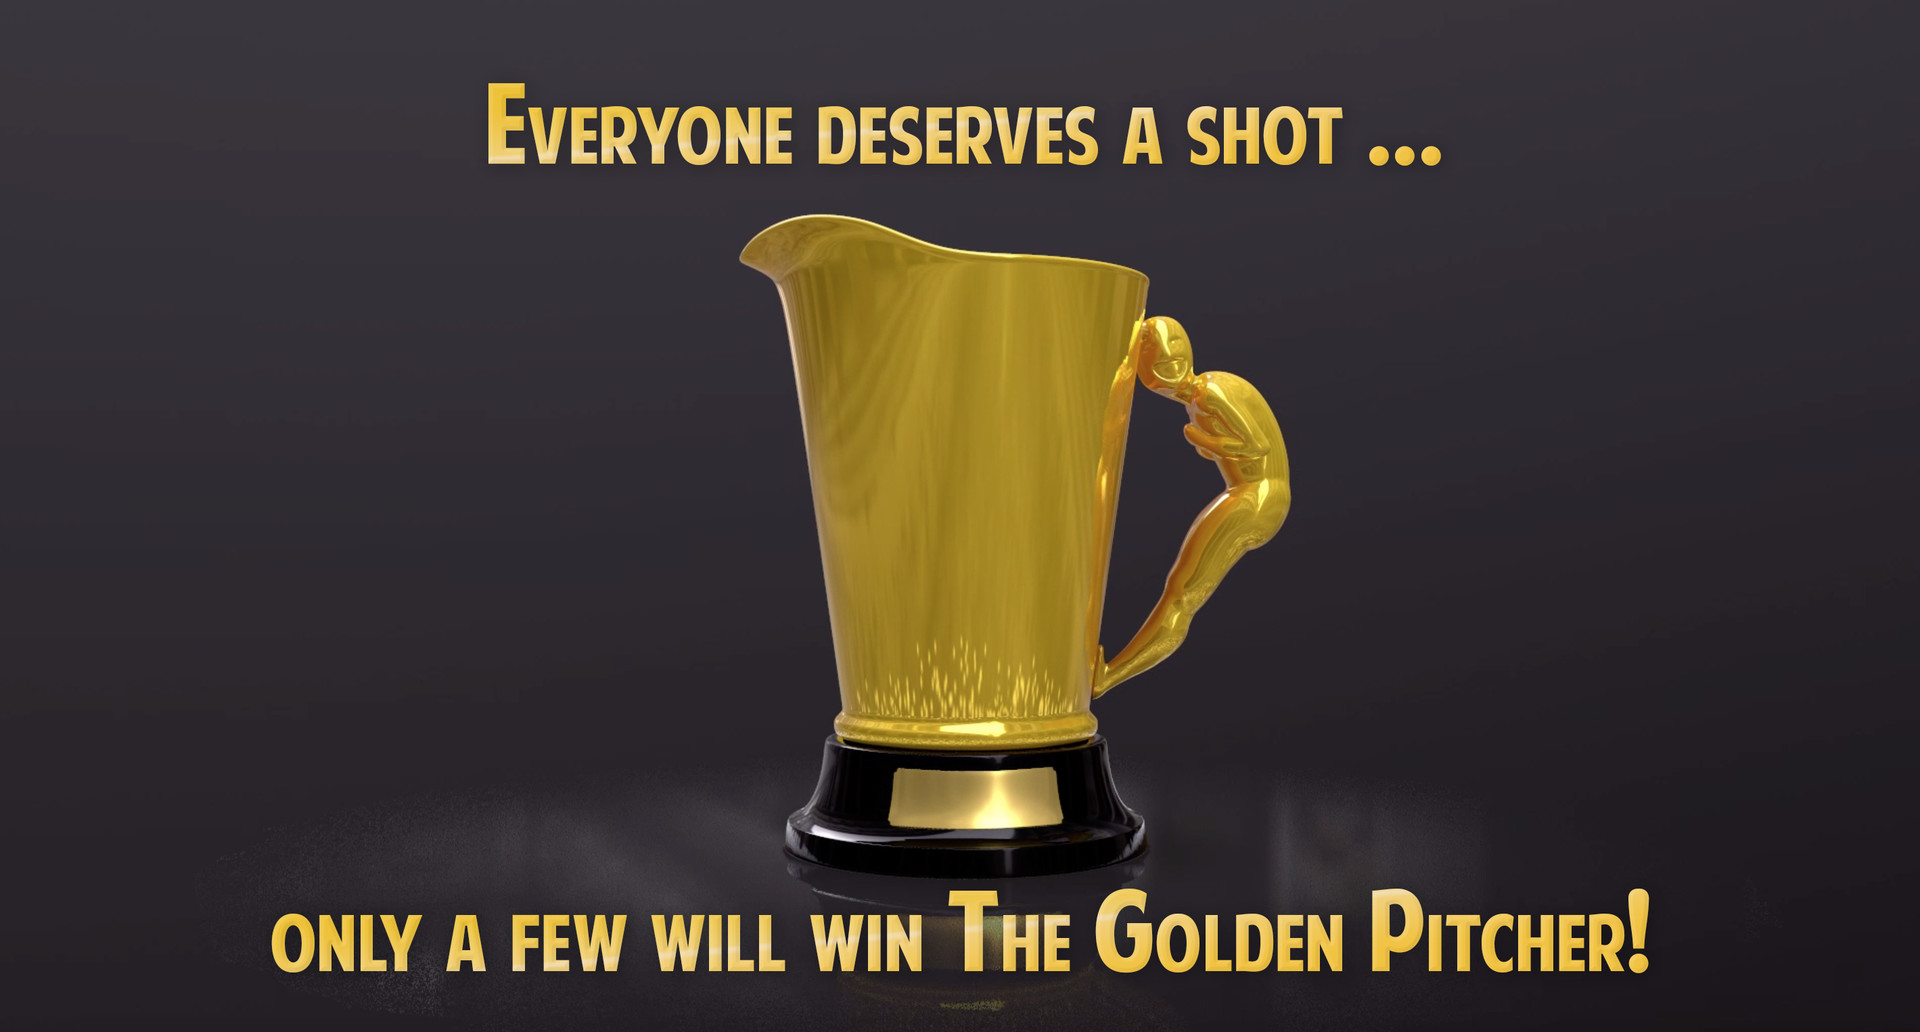 The golden pitcher tagline